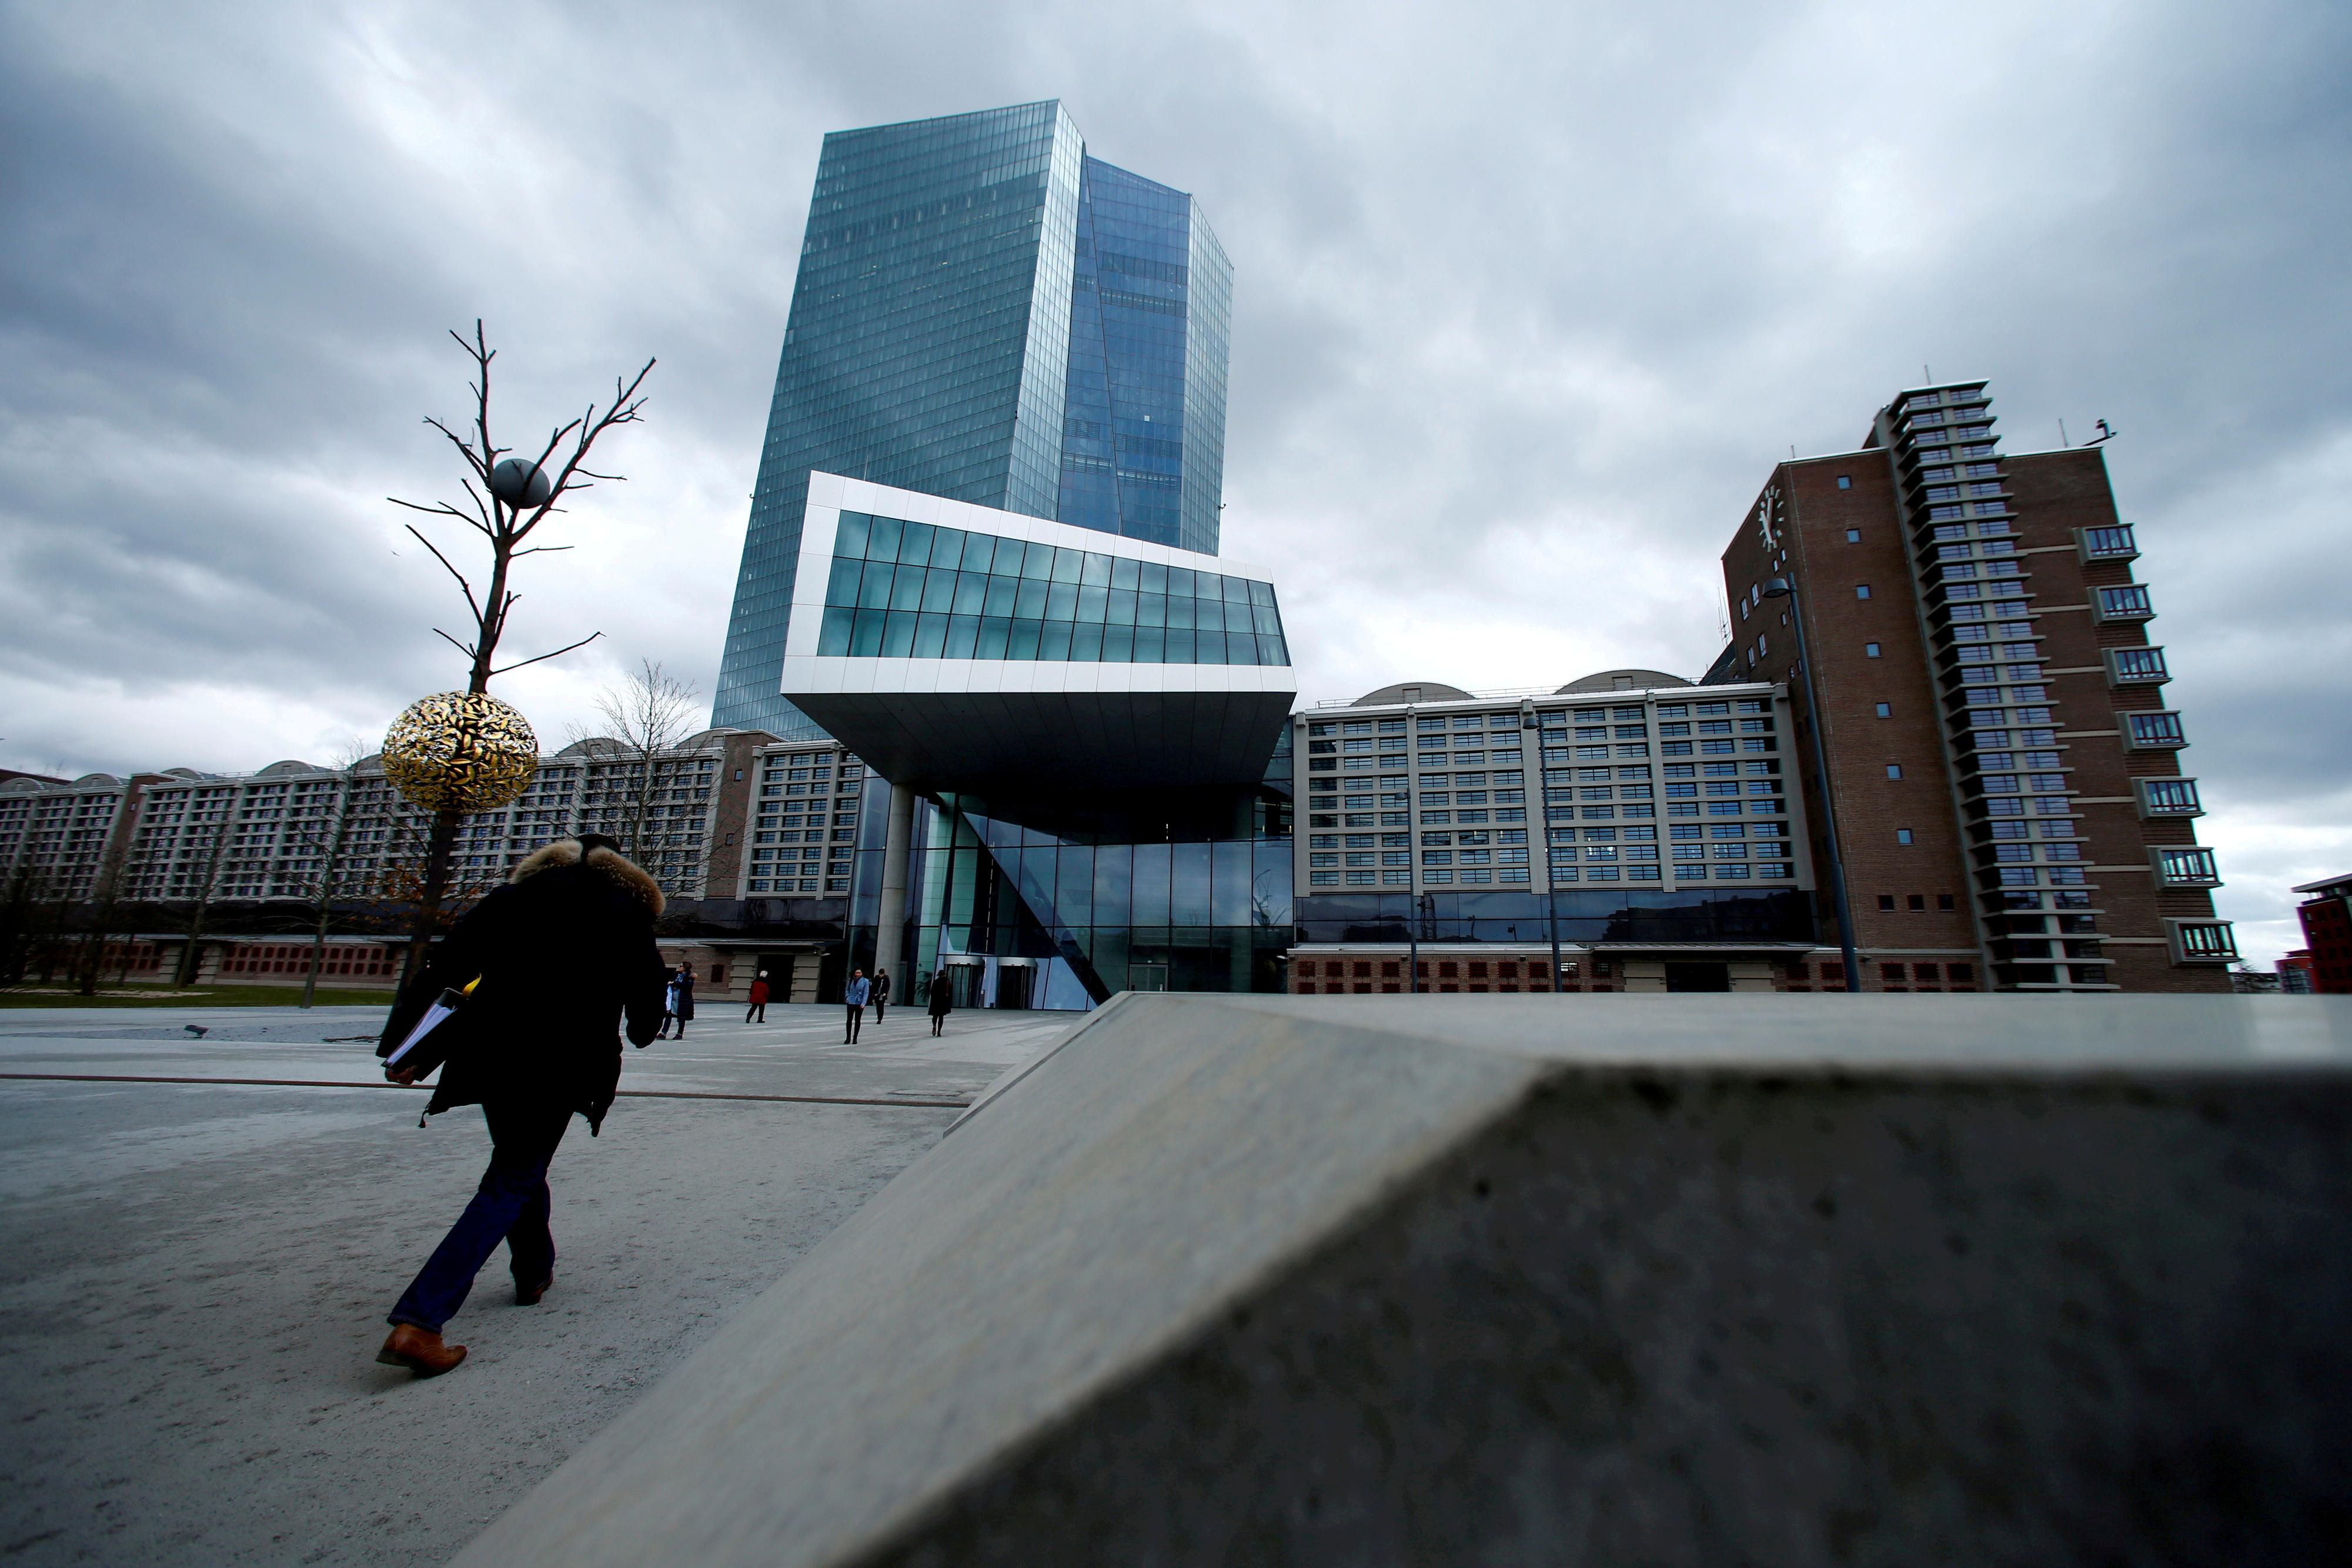 European Central Bank (ECB) headquarters building is seen in Frankfurt, Germany, March 7, 2018. REUTERS/Ralph Orlowski/File Photo